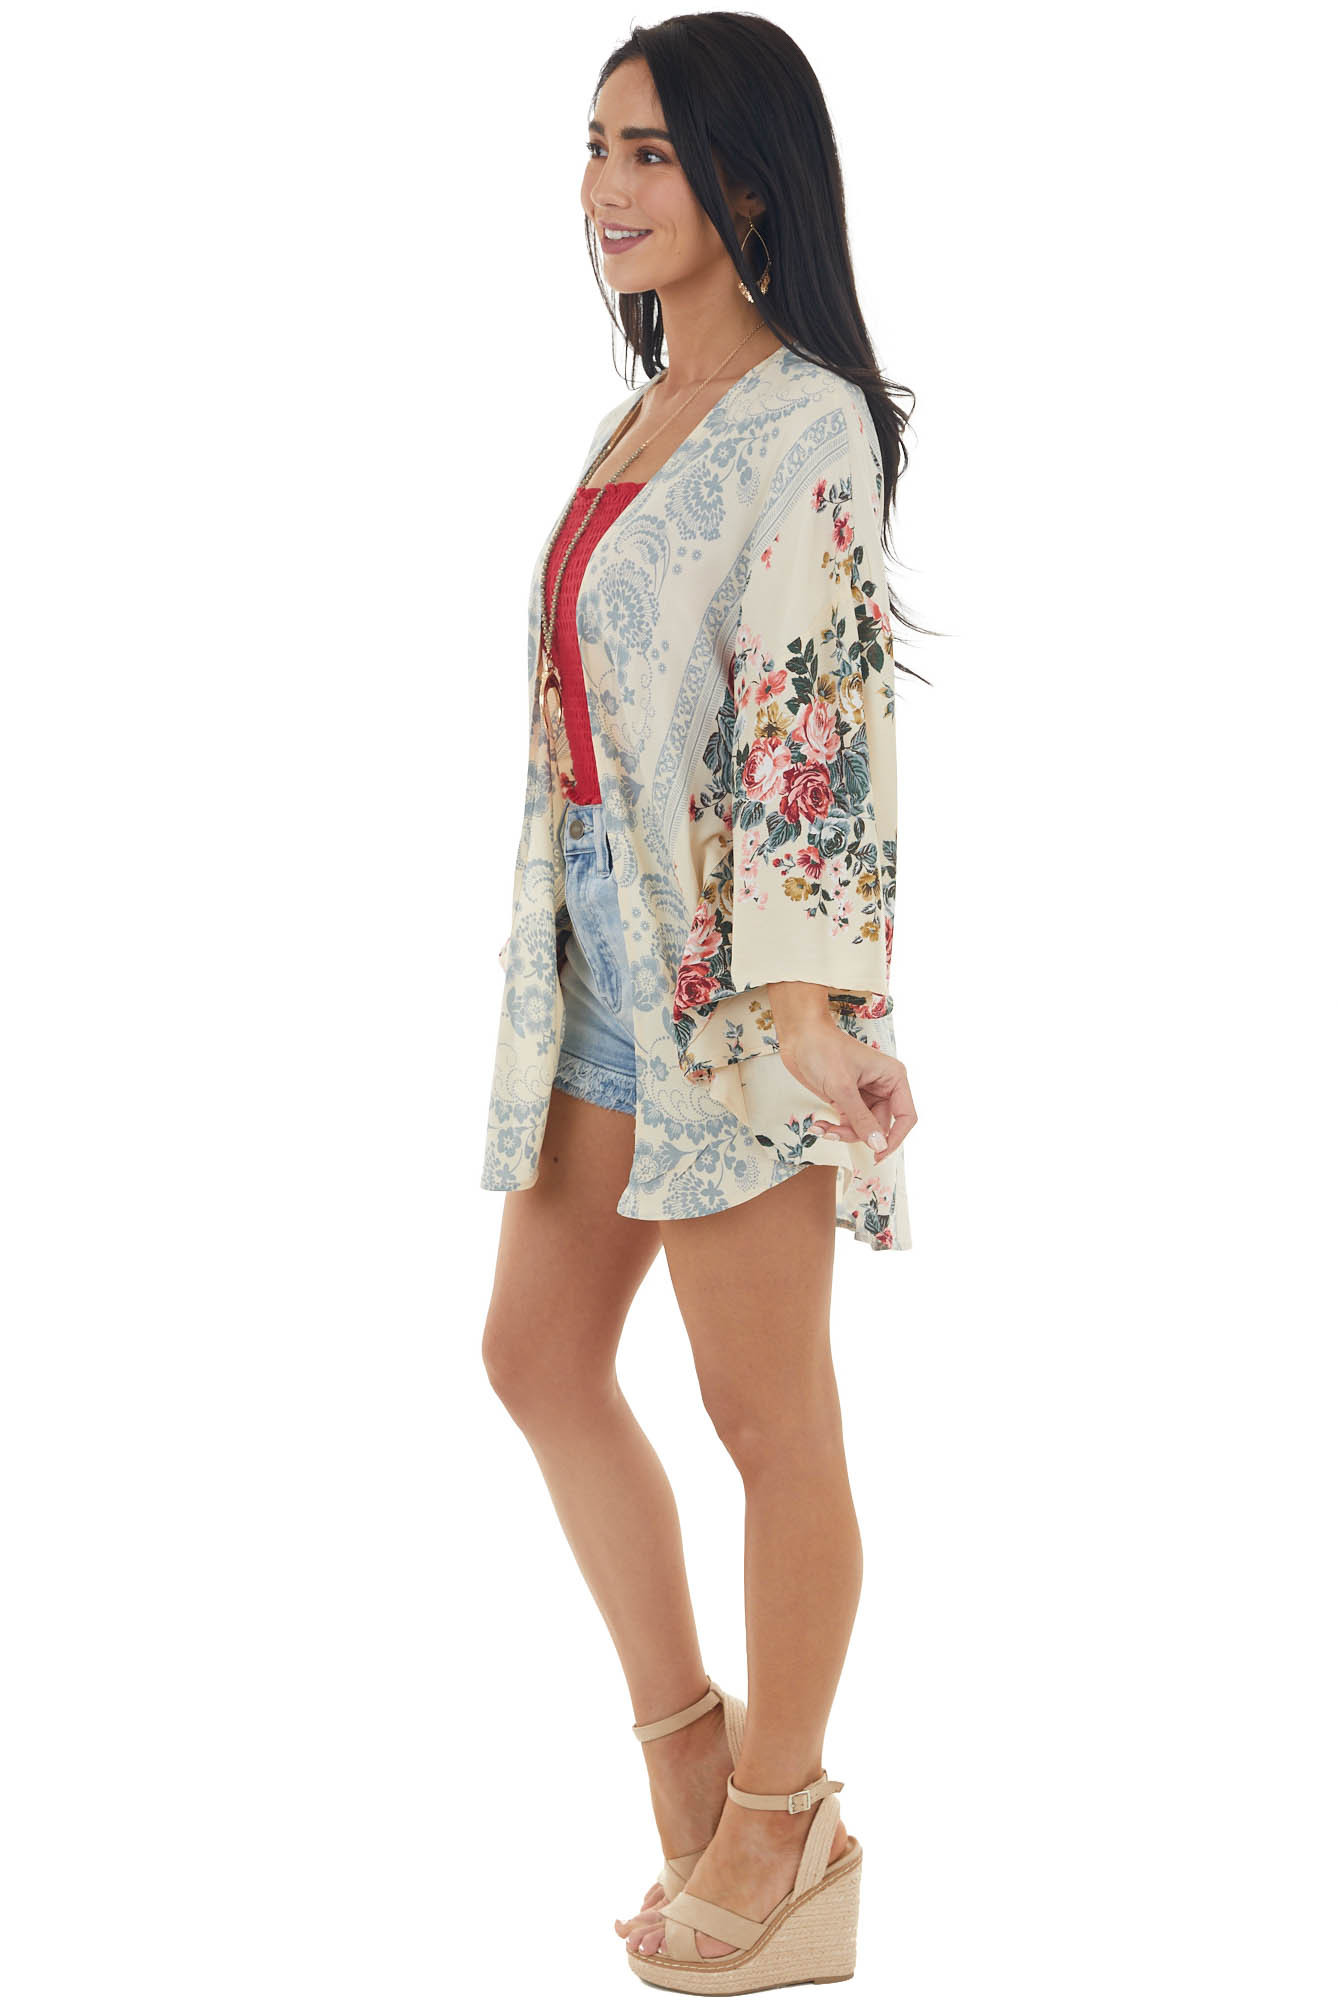 Champagne Floral and Abstract Print Kimono with Rounded Hem